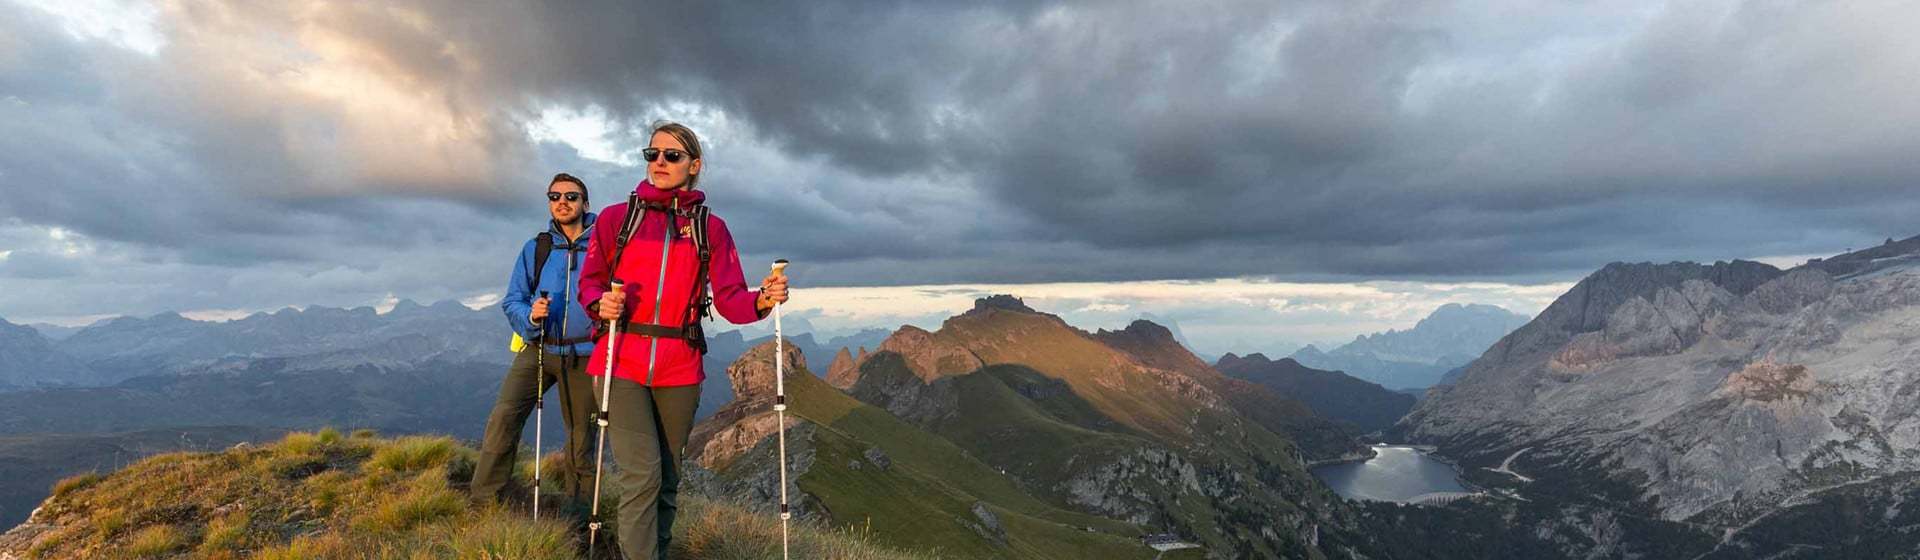 September, month of changing colors in the Dolomites